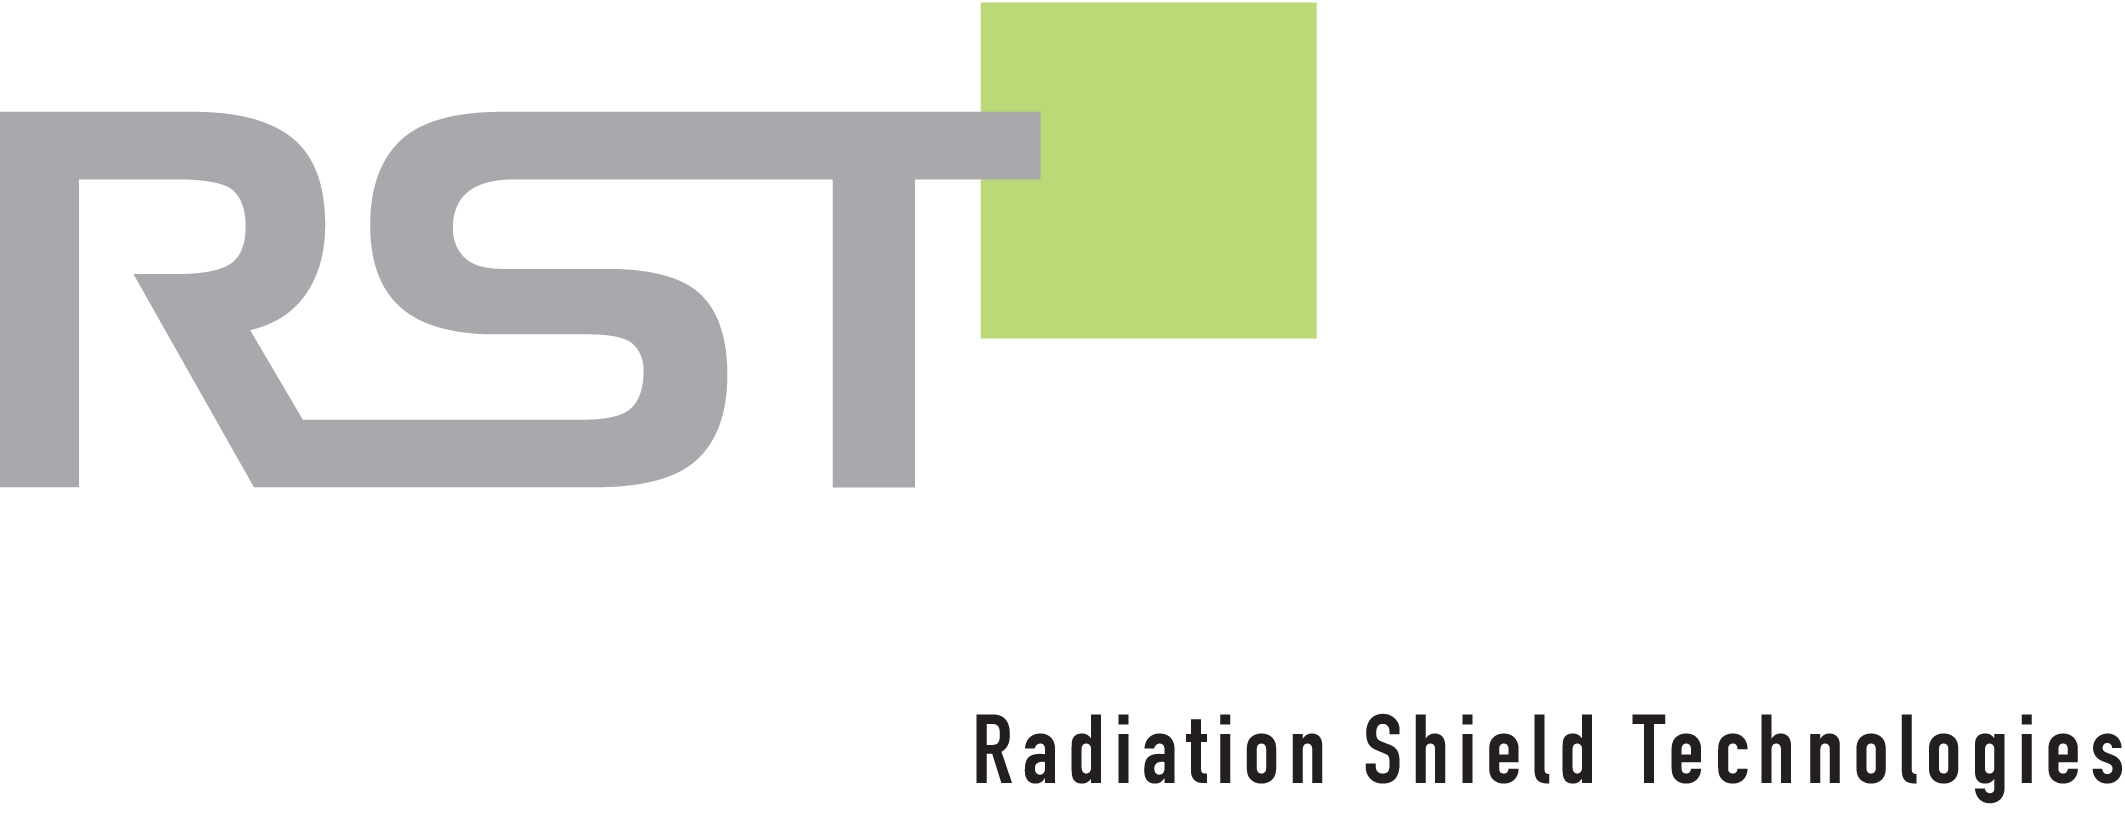 rst_logo_high_res_final